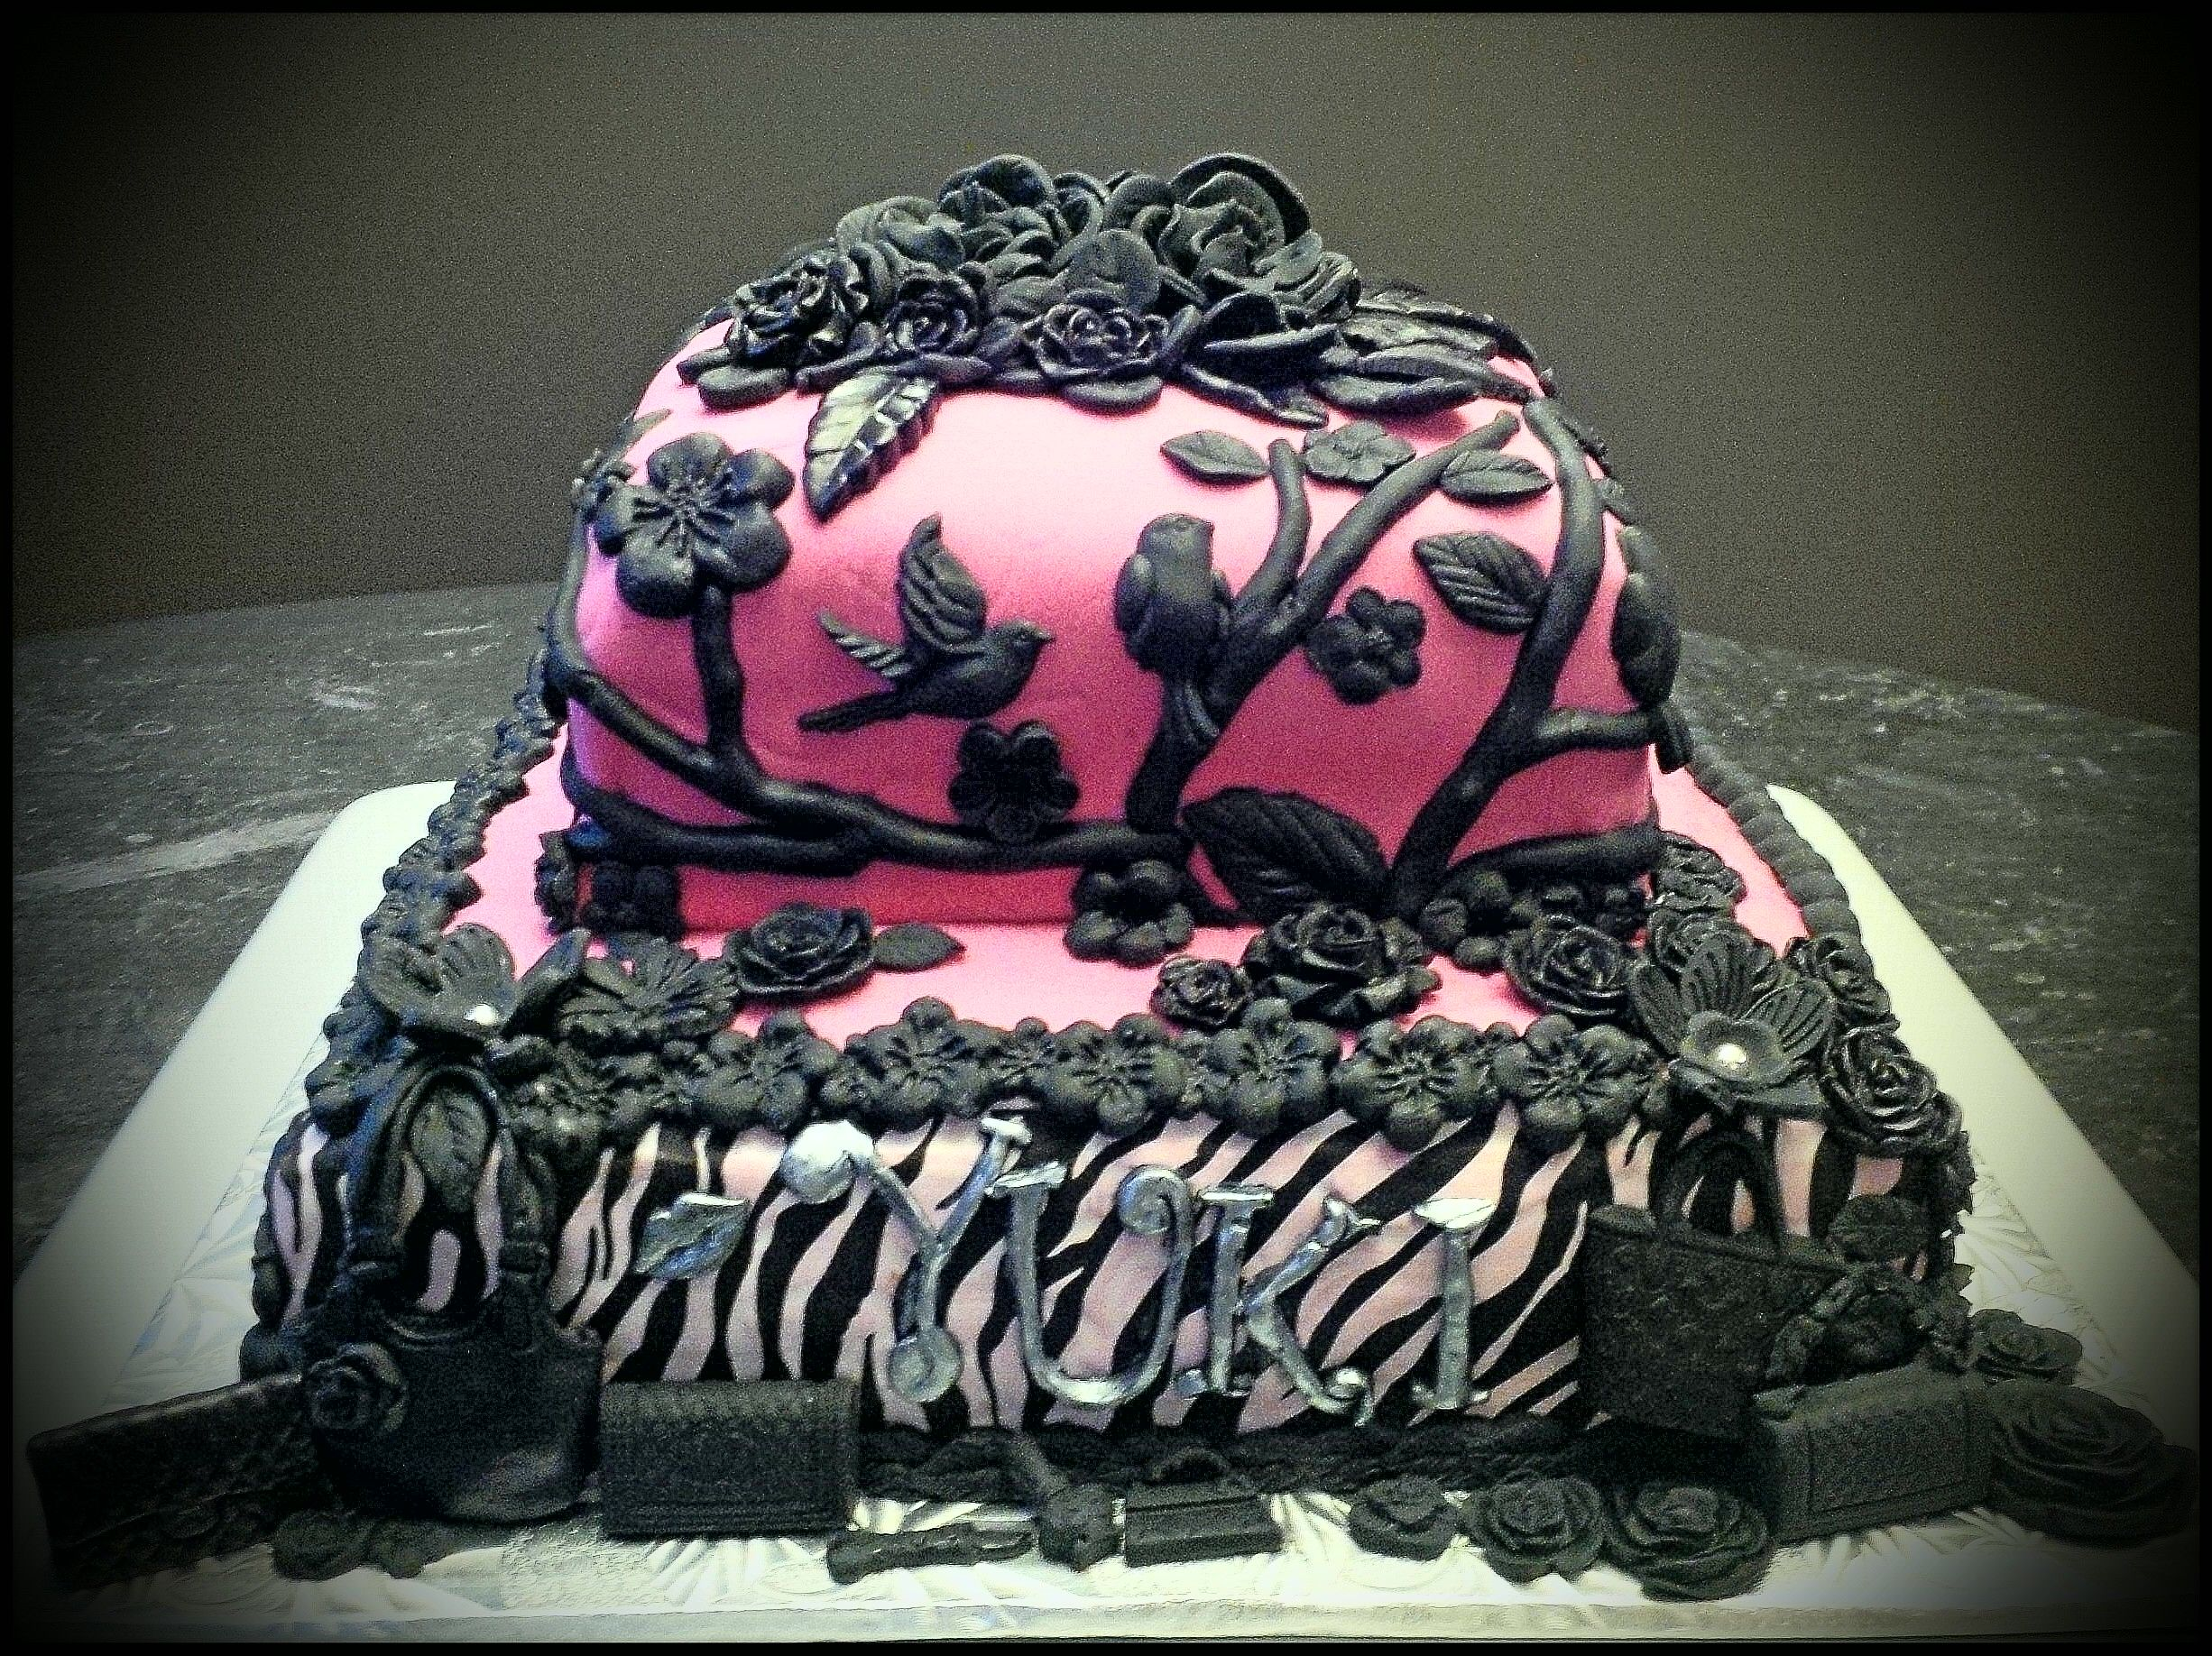 Birds ~ Custom-Made-To-Order Cakes & Desserts for All Occasions  www.sumptuoustreats.com